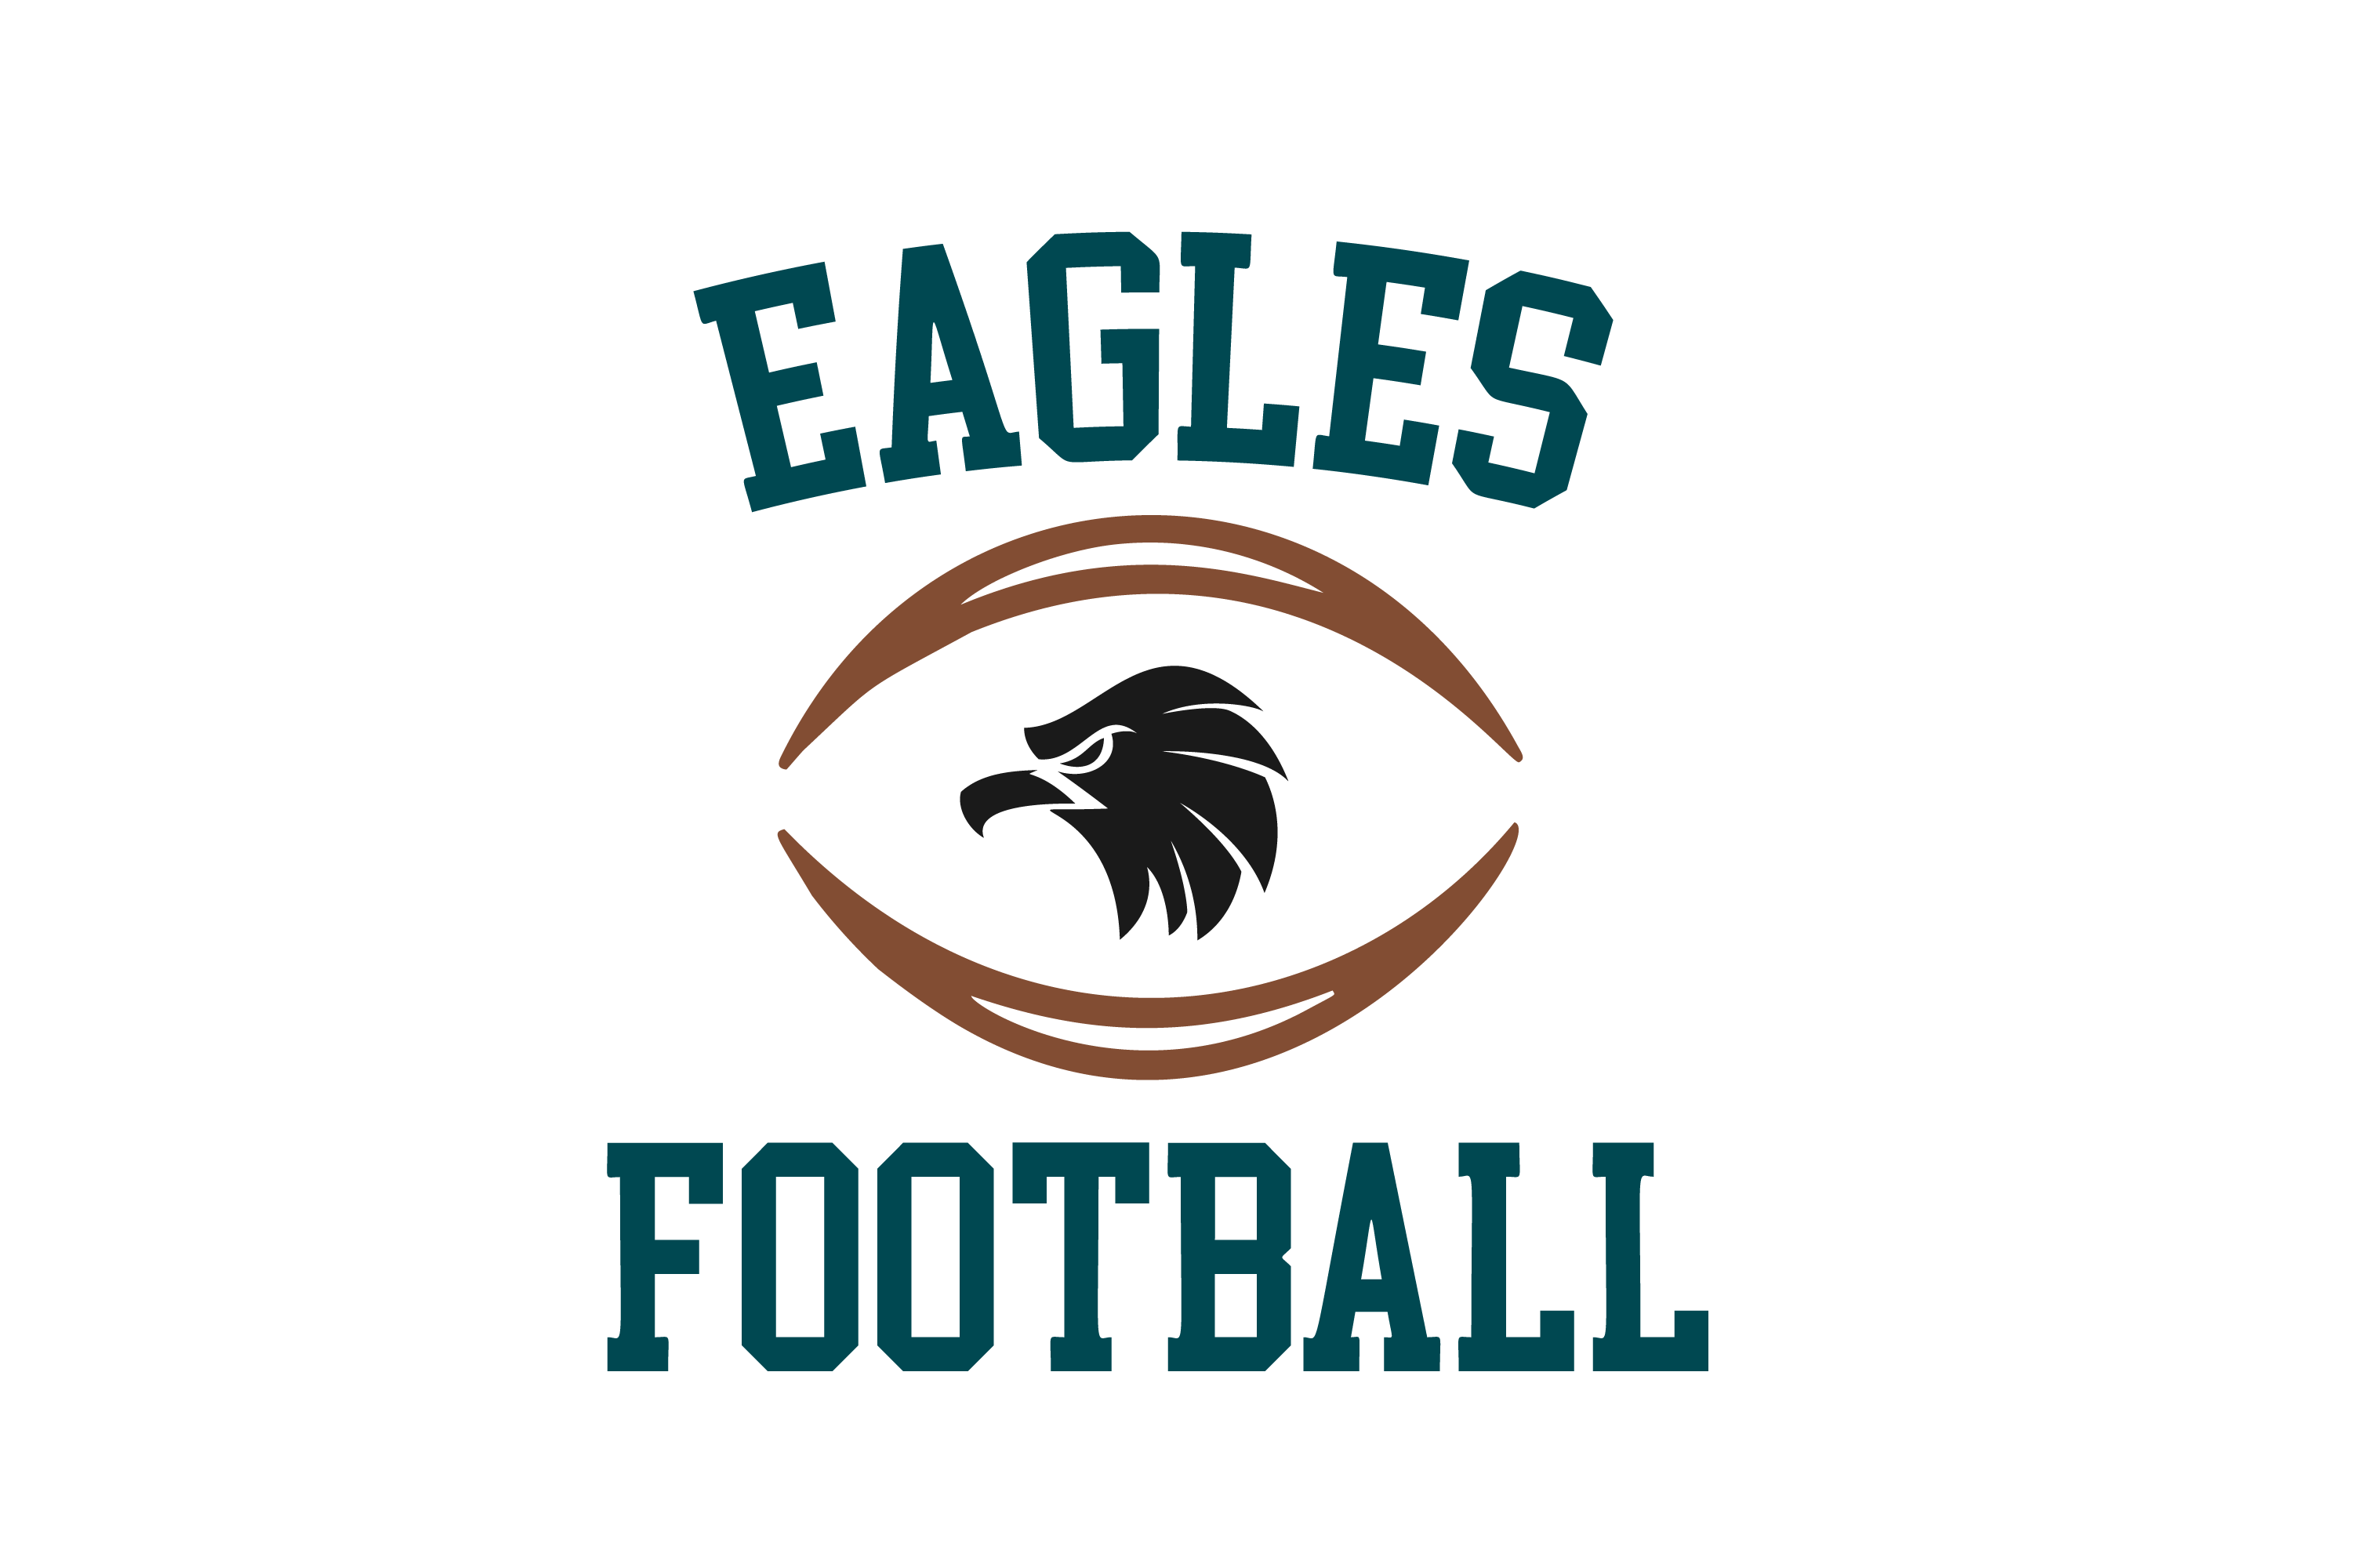 Download Free Eagles Football High School Mascot Svg Graphic By Am Digital for Cricut Explore, Silhouette and other cutting machines.